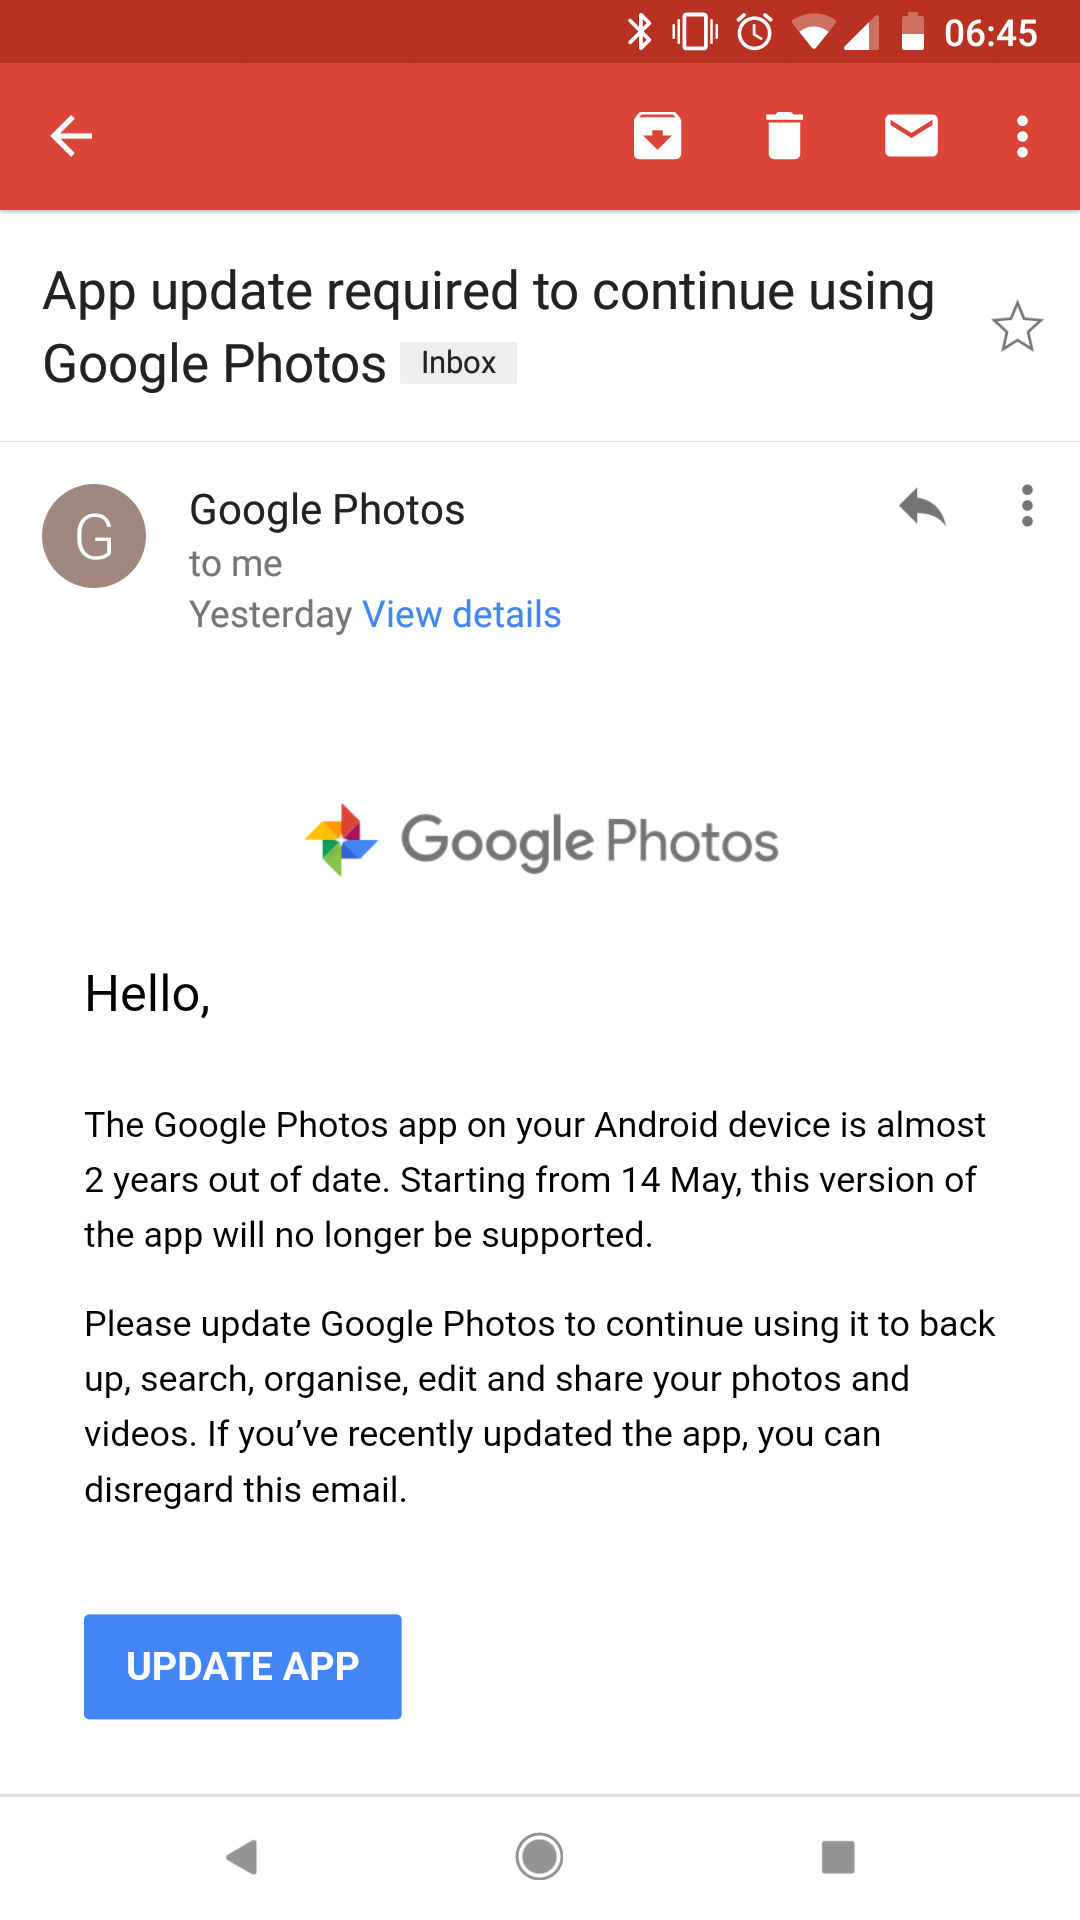 App update required to continue using Google Photos - Google